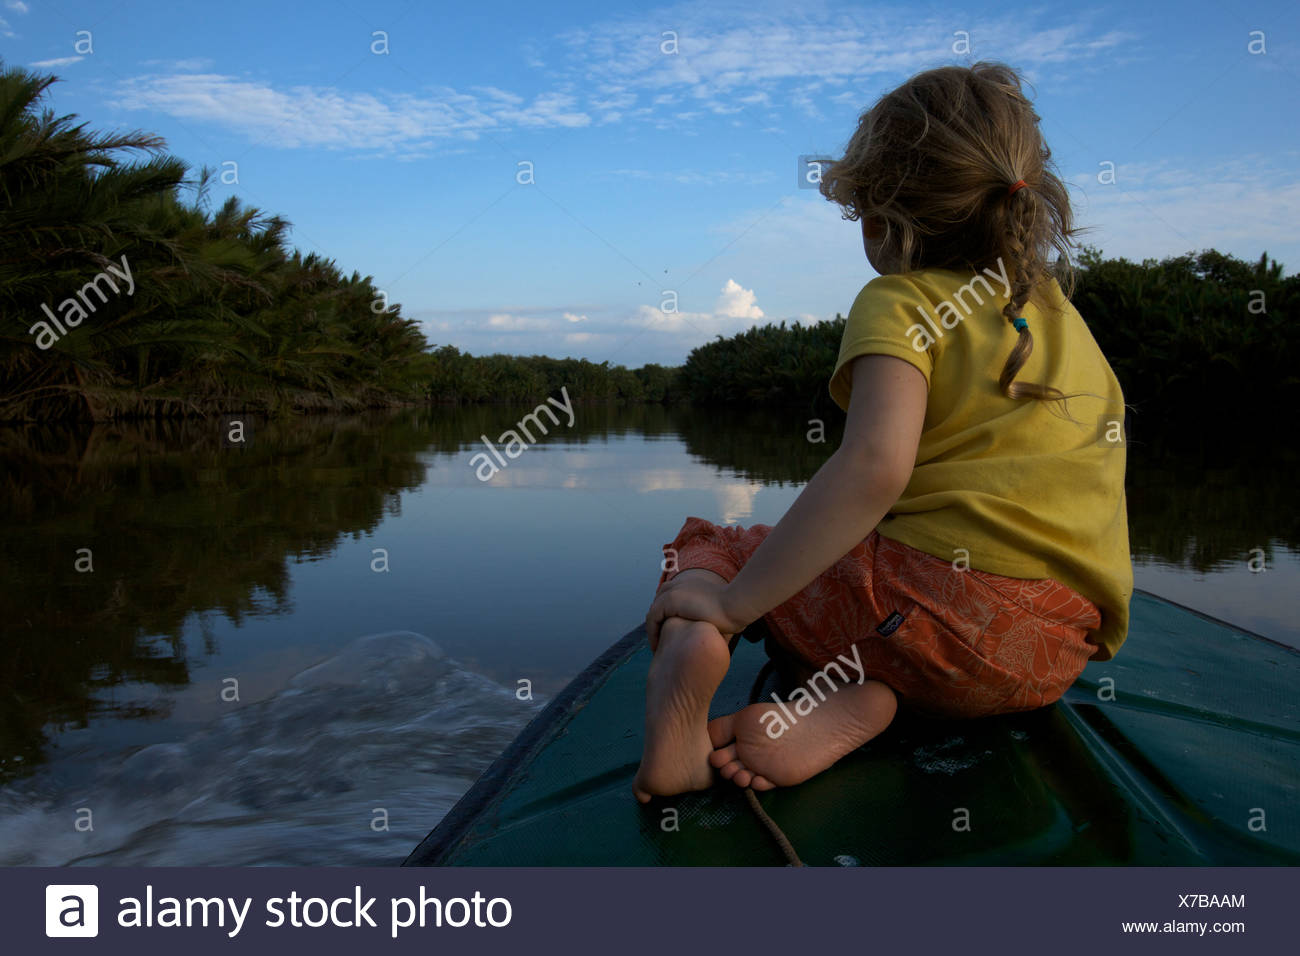 A girl rides on the bow of a boat on a river in Borneo. - Stock Image